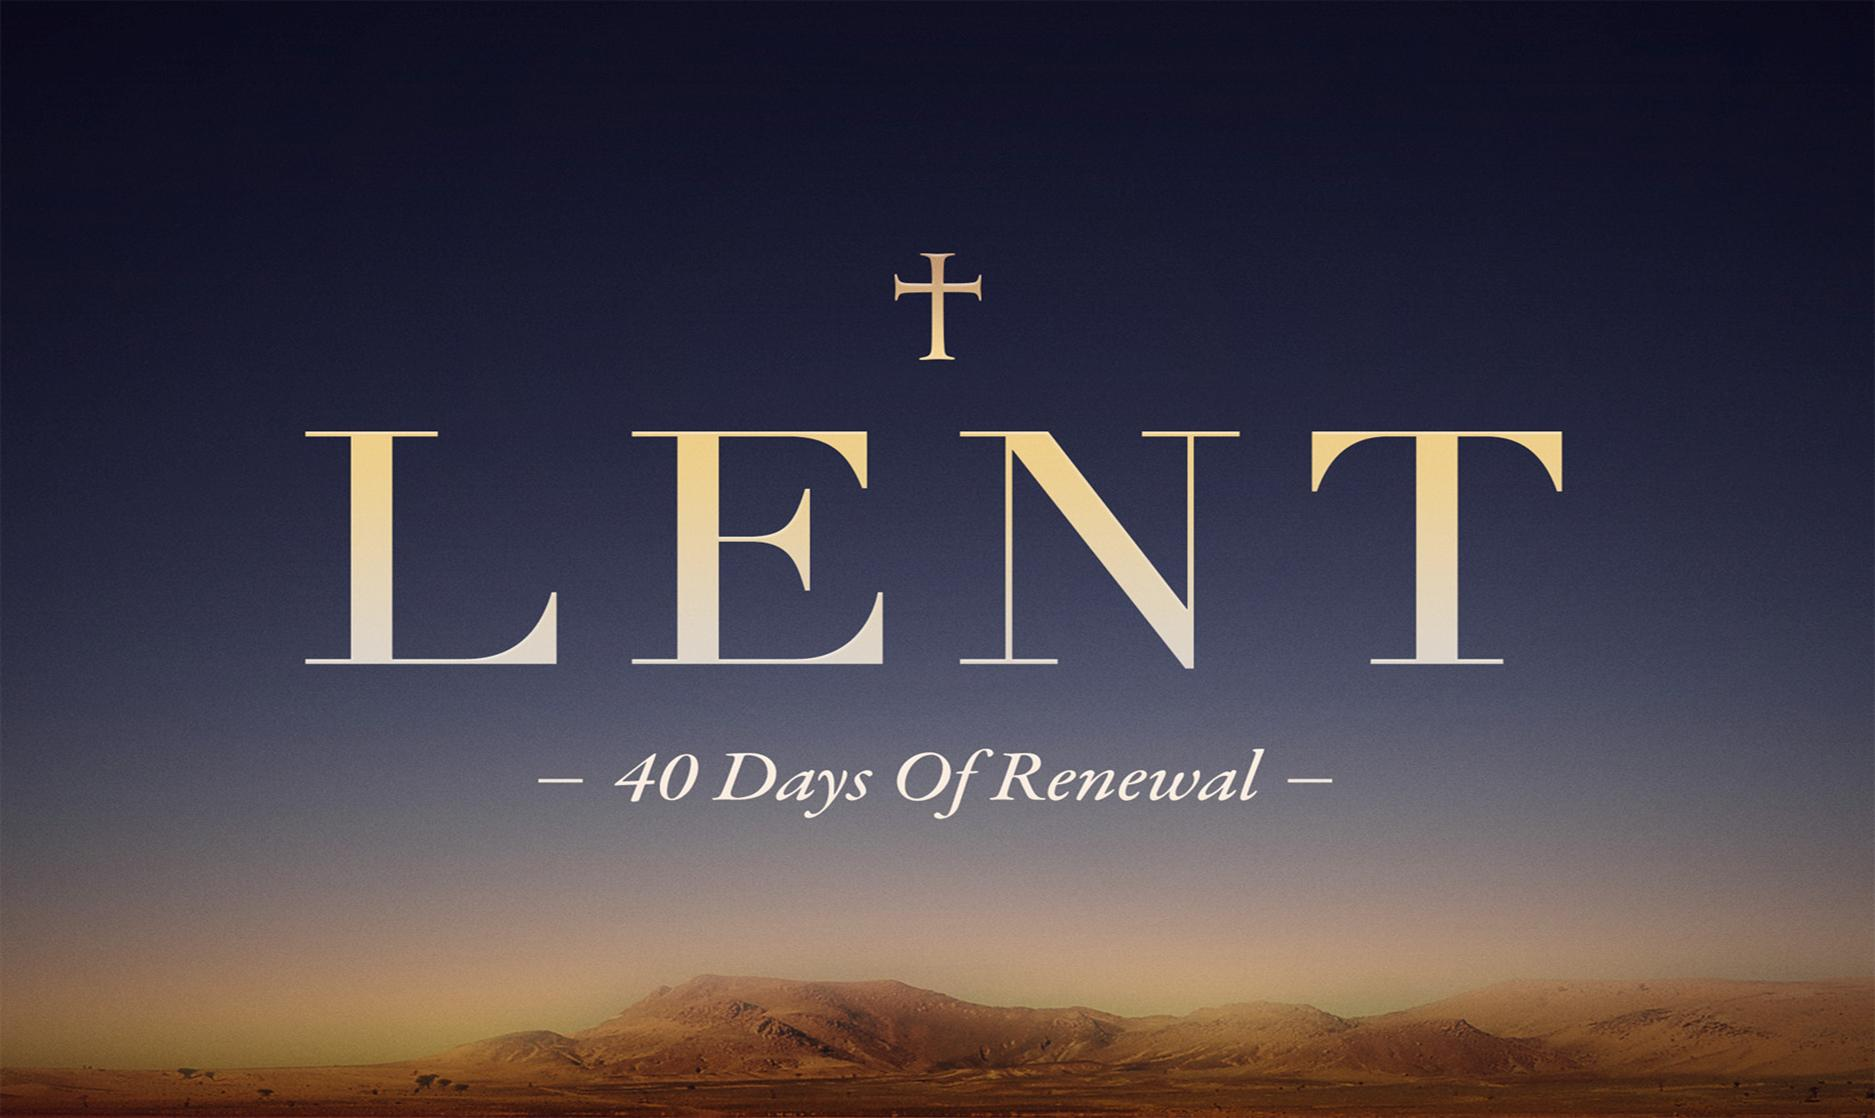 Lent - Wallpaper for lent season ...